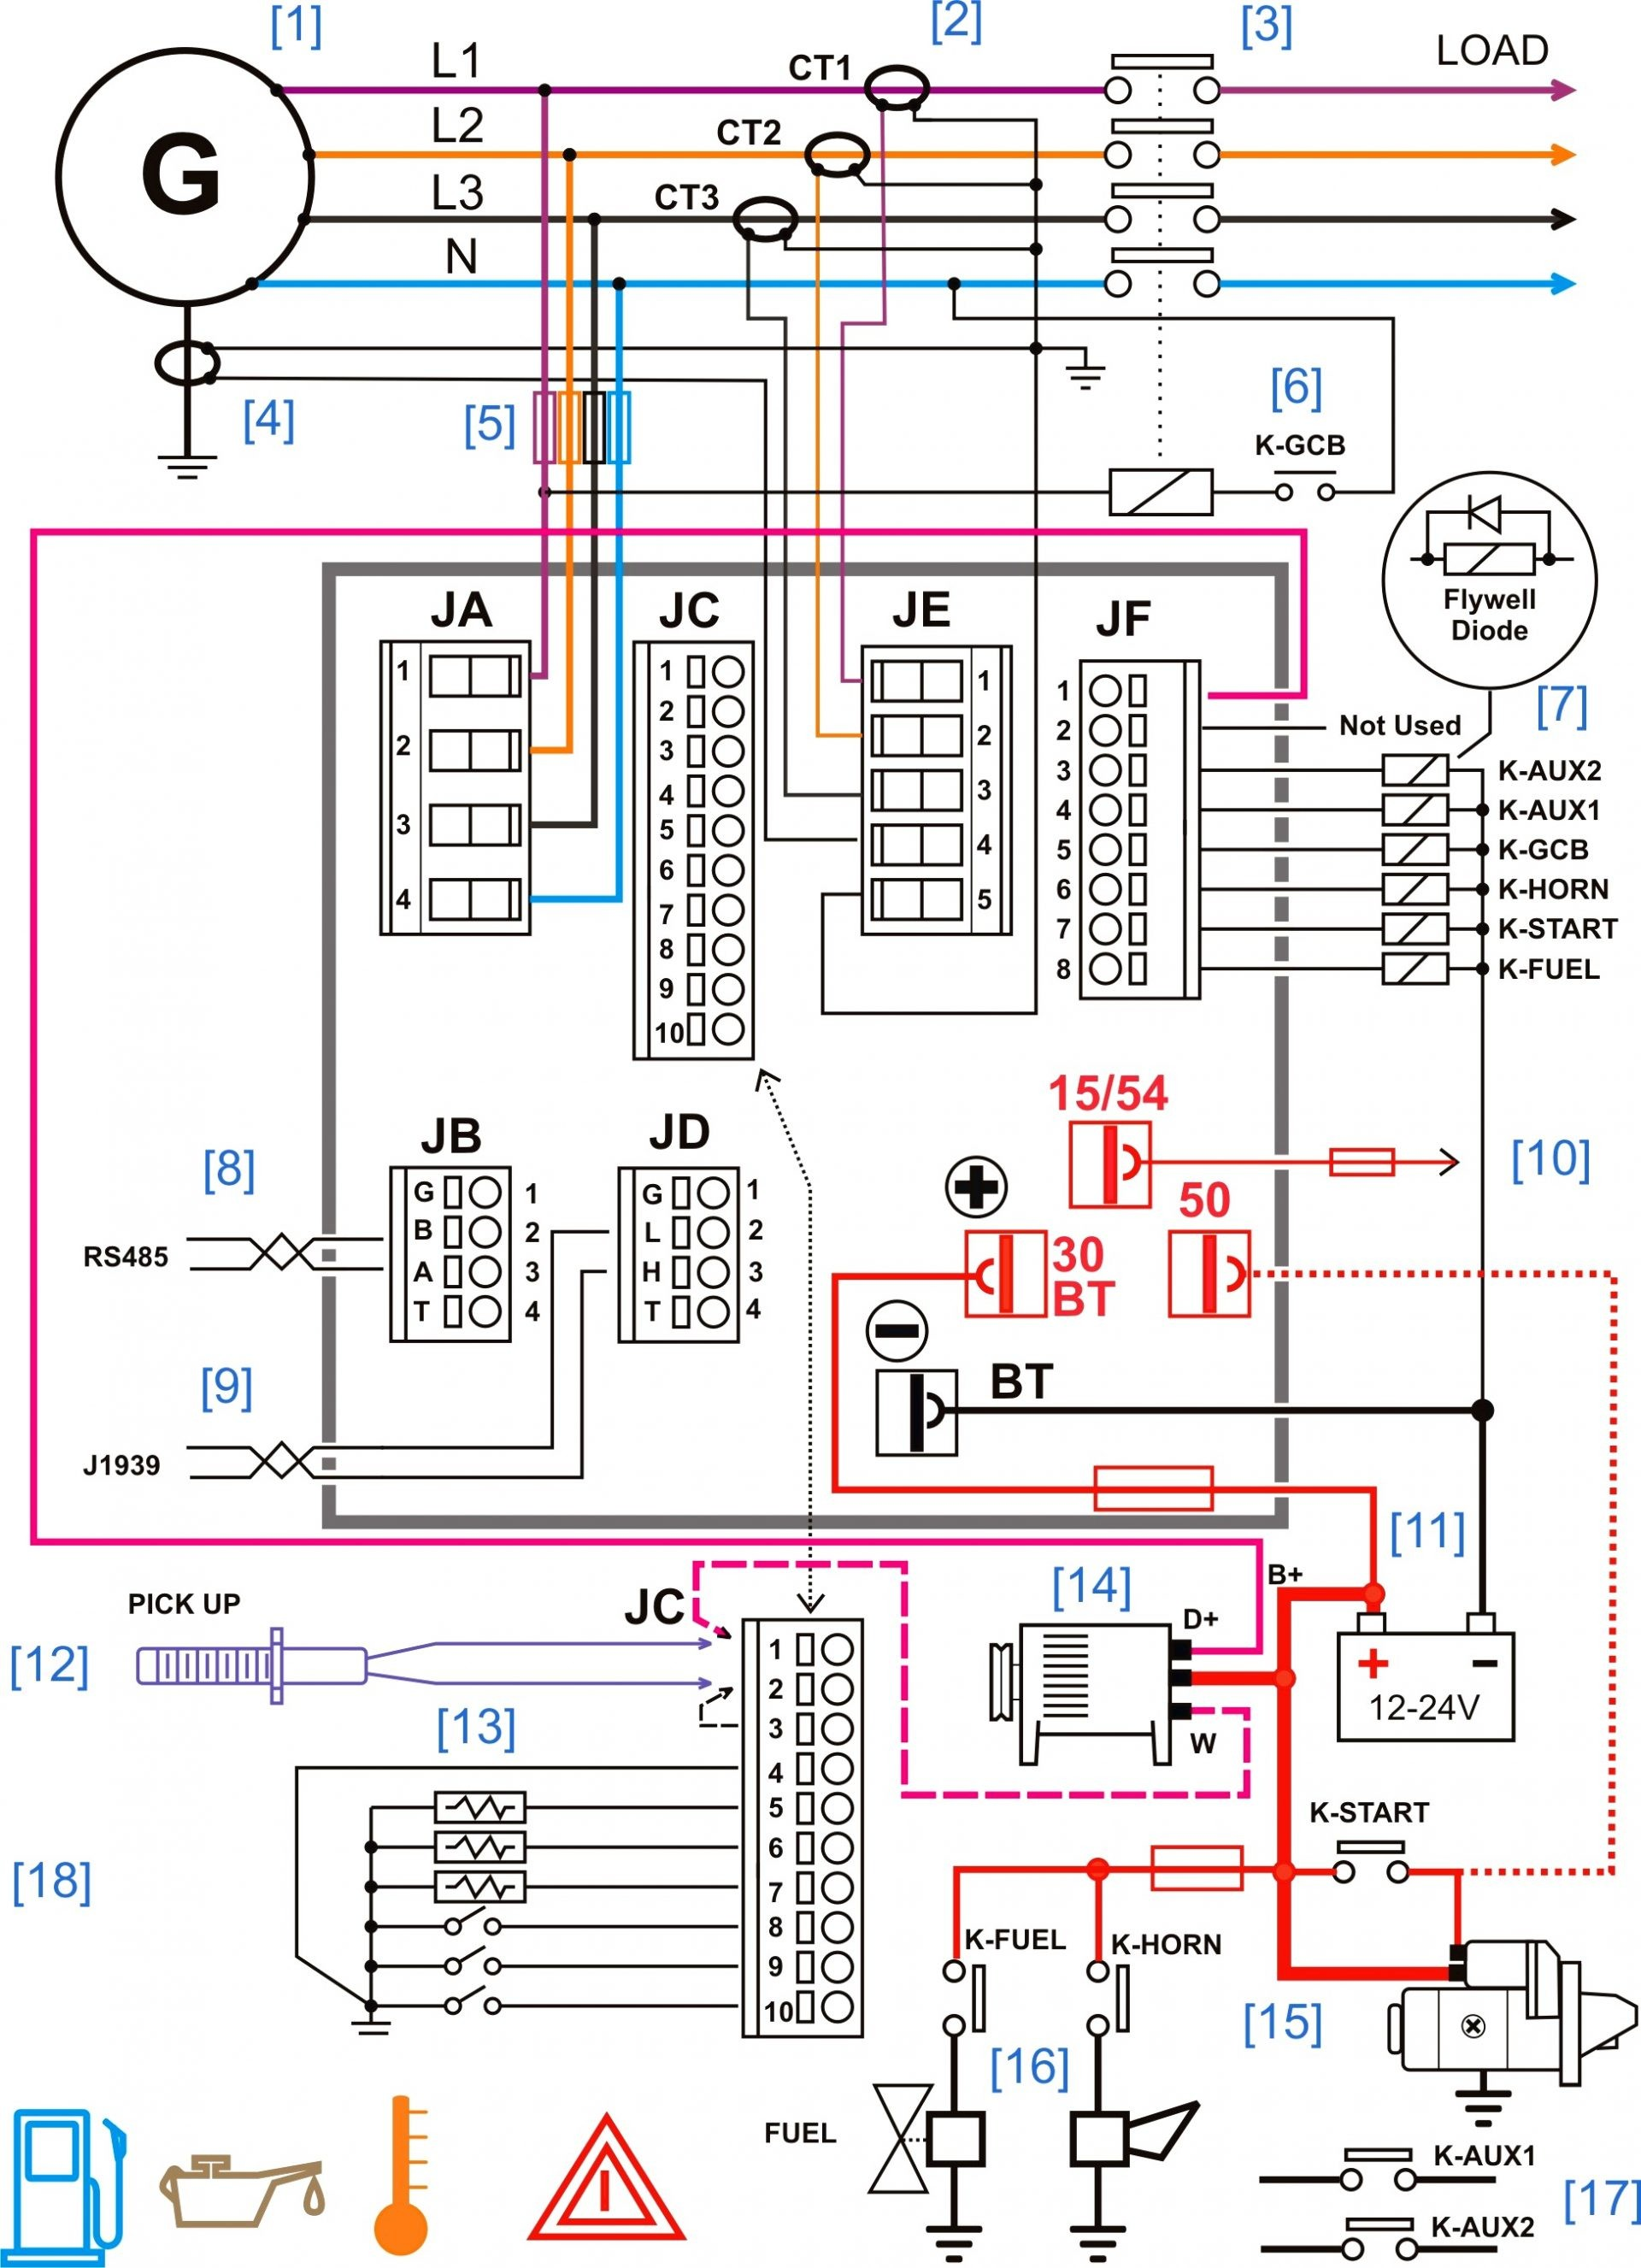 Fire Alarm System Wiring Diagram Addressable Fire Alarm System Wiring Diagram Image Of Fire Alarm System Wiring Diagram